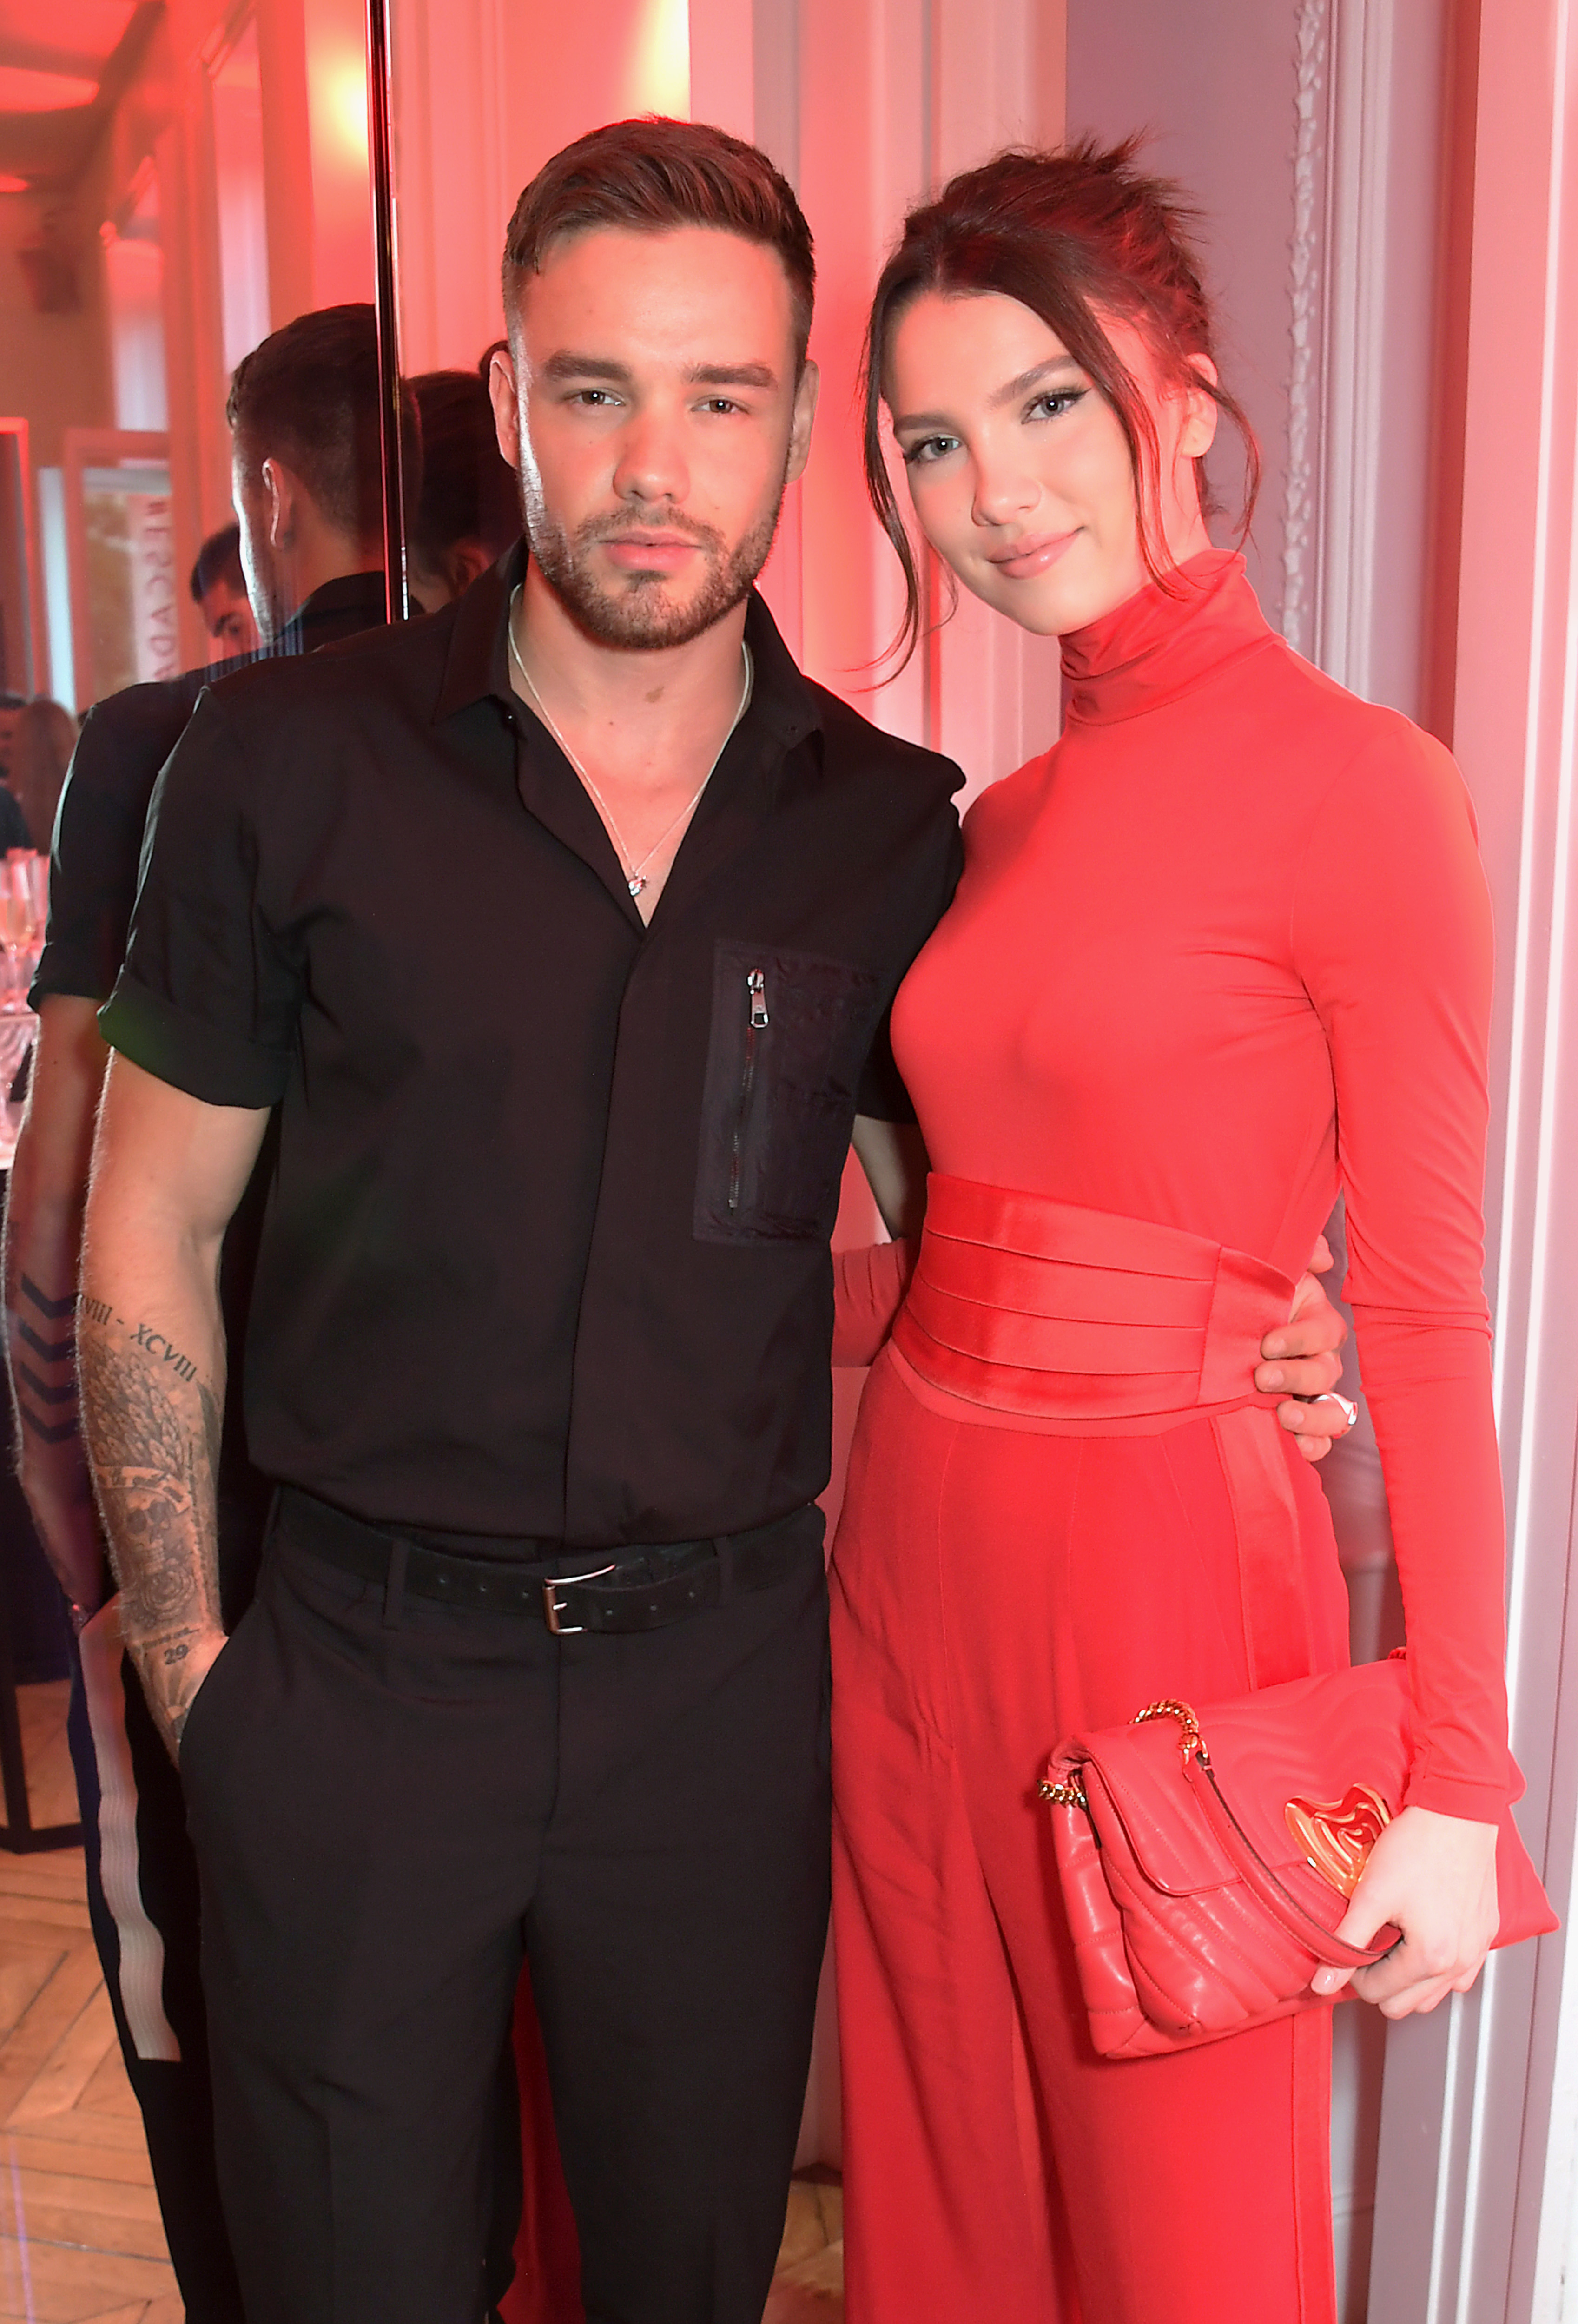 Liam Payne and Maya Henry at the ESCADA x RITA ORA capsule launch event during Paris Fashion Week.